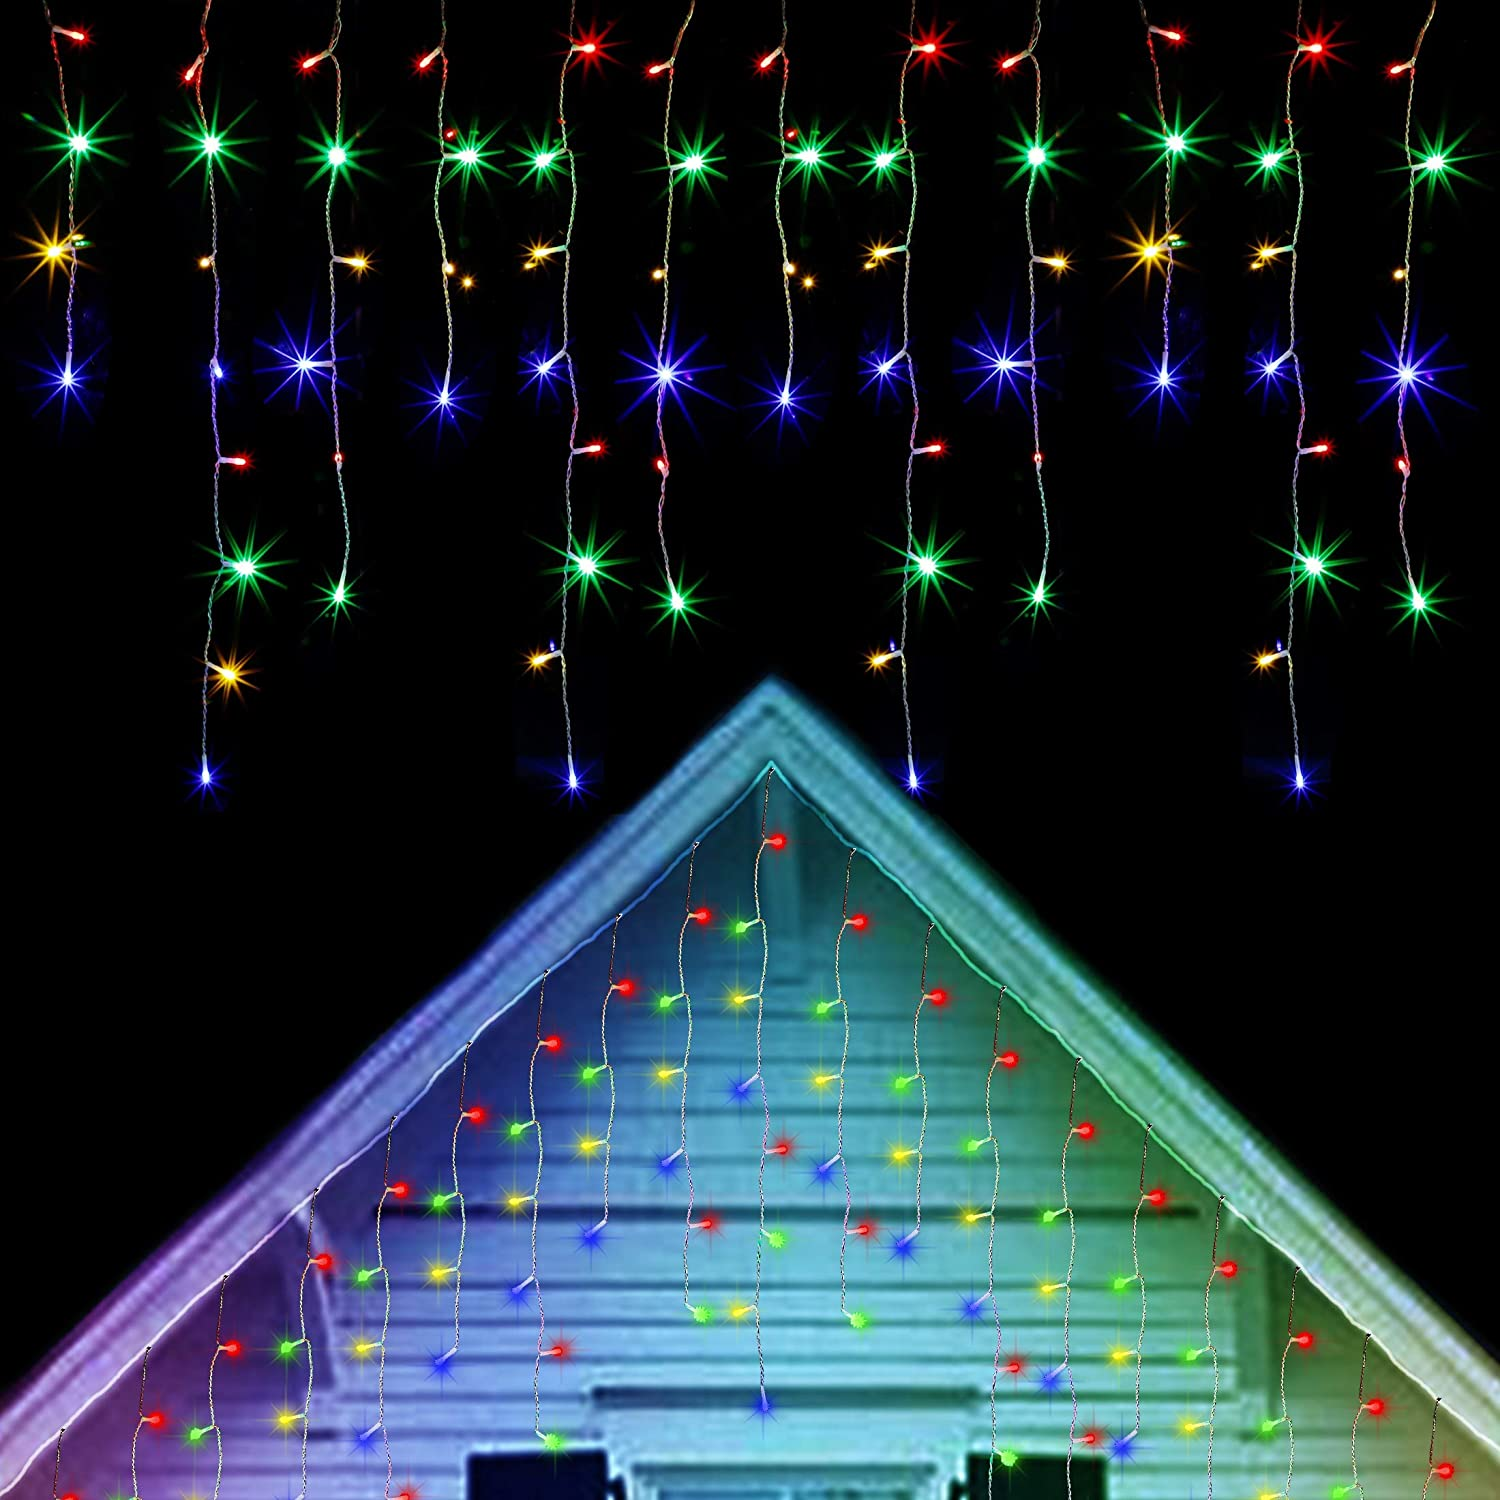 Twinkle Star 360 LED Icicle Christmas Lights Outdoor Dripping Icicle Lights, 29.5ft 8 Modes Curtain Fairy Lights with 60 Drops, Indoor Xmas Holiday Wedding Party Decorations, Multicolor